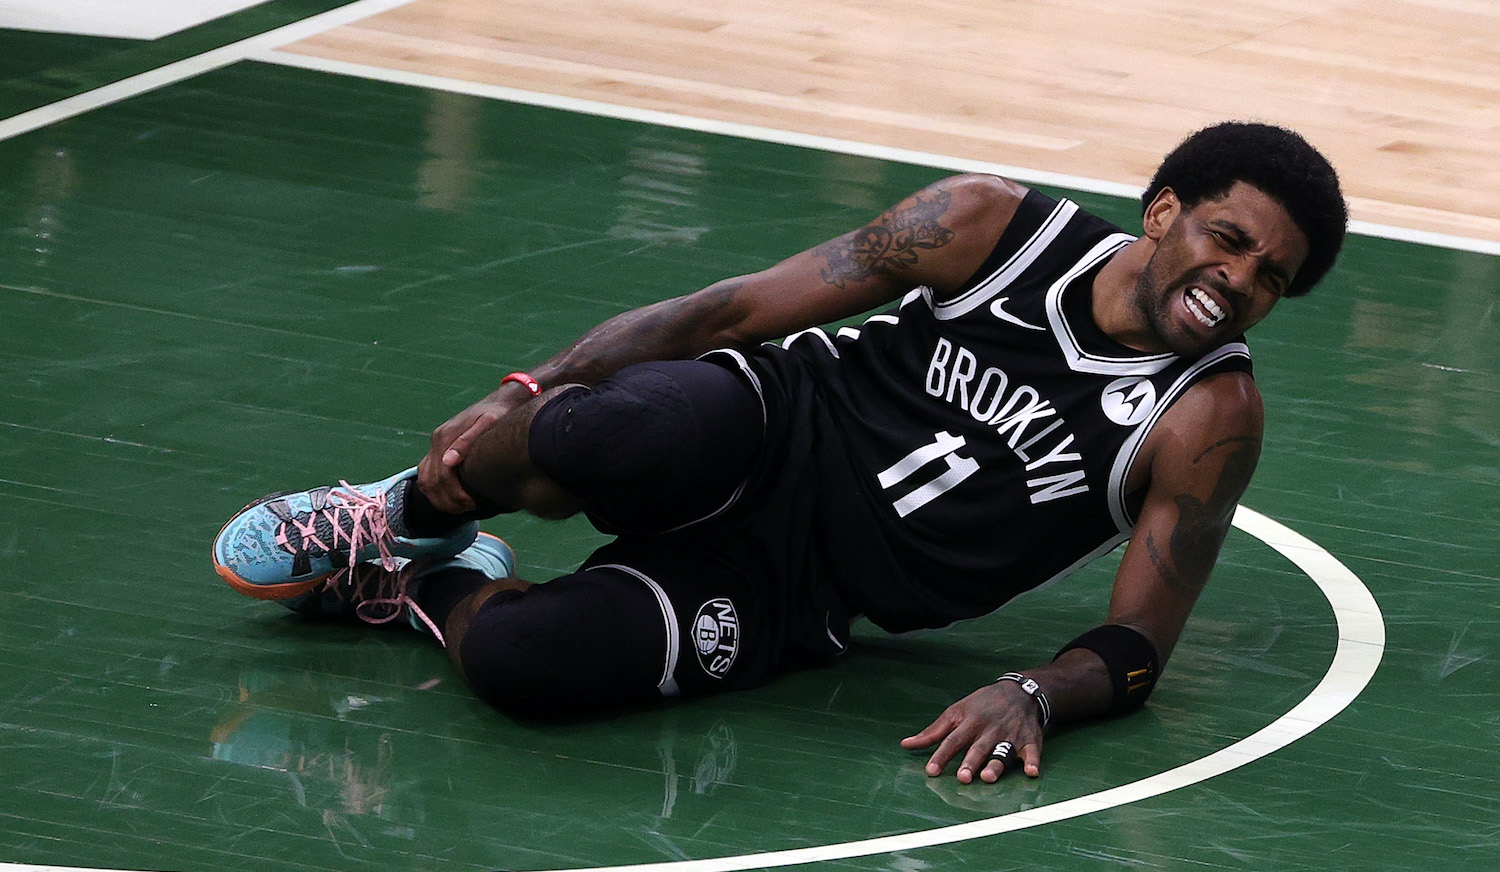 MILWAUKEE, WISCONSIN - JUNE 13: Kyrie Irving #11 of the Brooklyn Nets is injured during the first half of Game Four of the Eastern Conference second round playoff series against the Milwaukee Bucks at the Fiserv Forum on June 13, 2021 in Milwaukee, Wisconsin. NOTE TO USER: User expressly acknowledges and agrees that, by downloading and or using this photograph, User is consenting to the terms and conditions of the Getty Images License Agreement. (Photo by Stacy Revere/Getty Images)